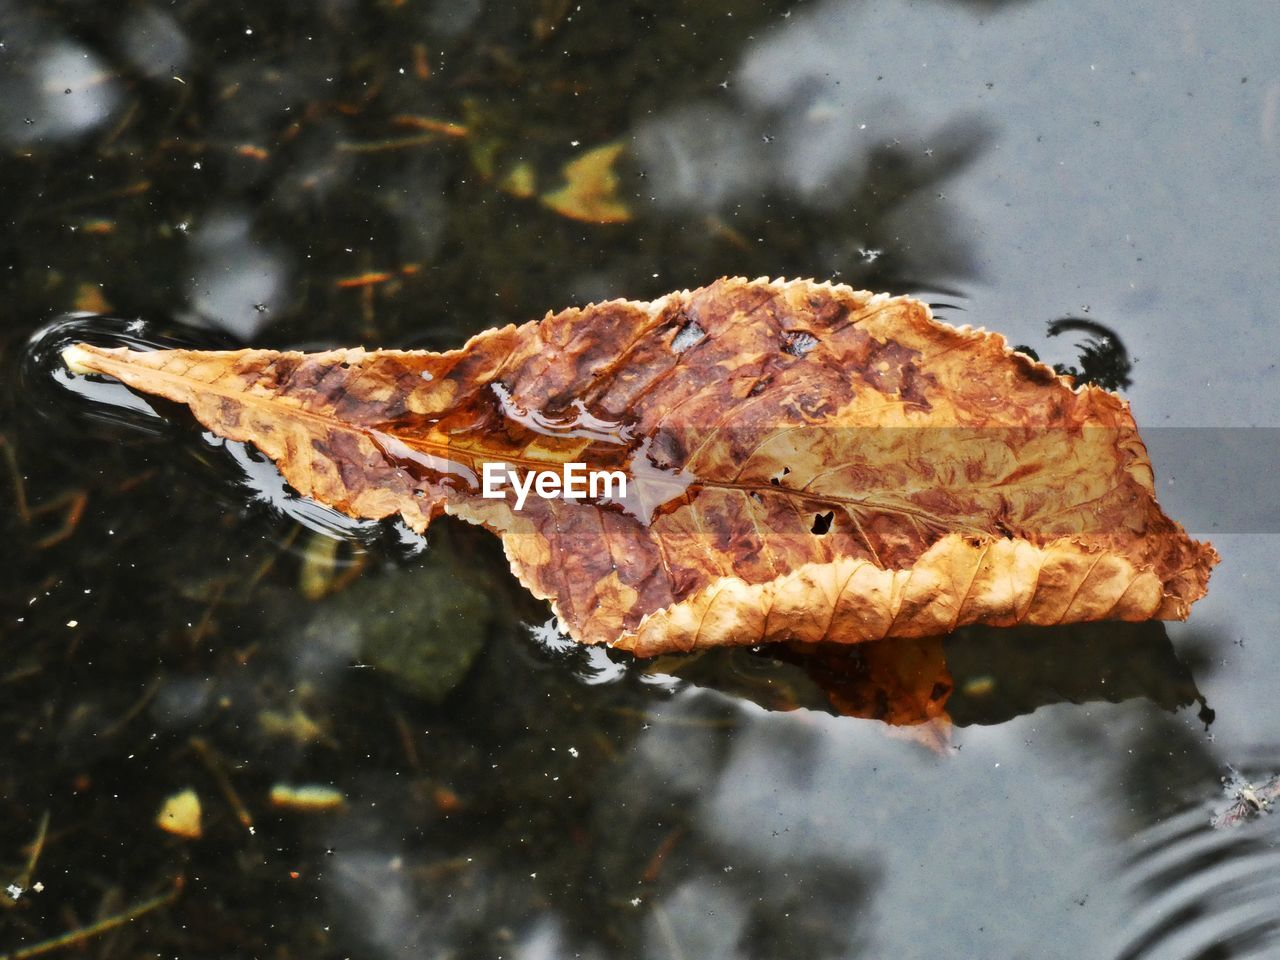 water, close-up, leaf, plant part, nature, food, food and drink, no people, day, high angle view, outdoors, lake, floating, orange color, change, reflection, floating on water, plant, leaves